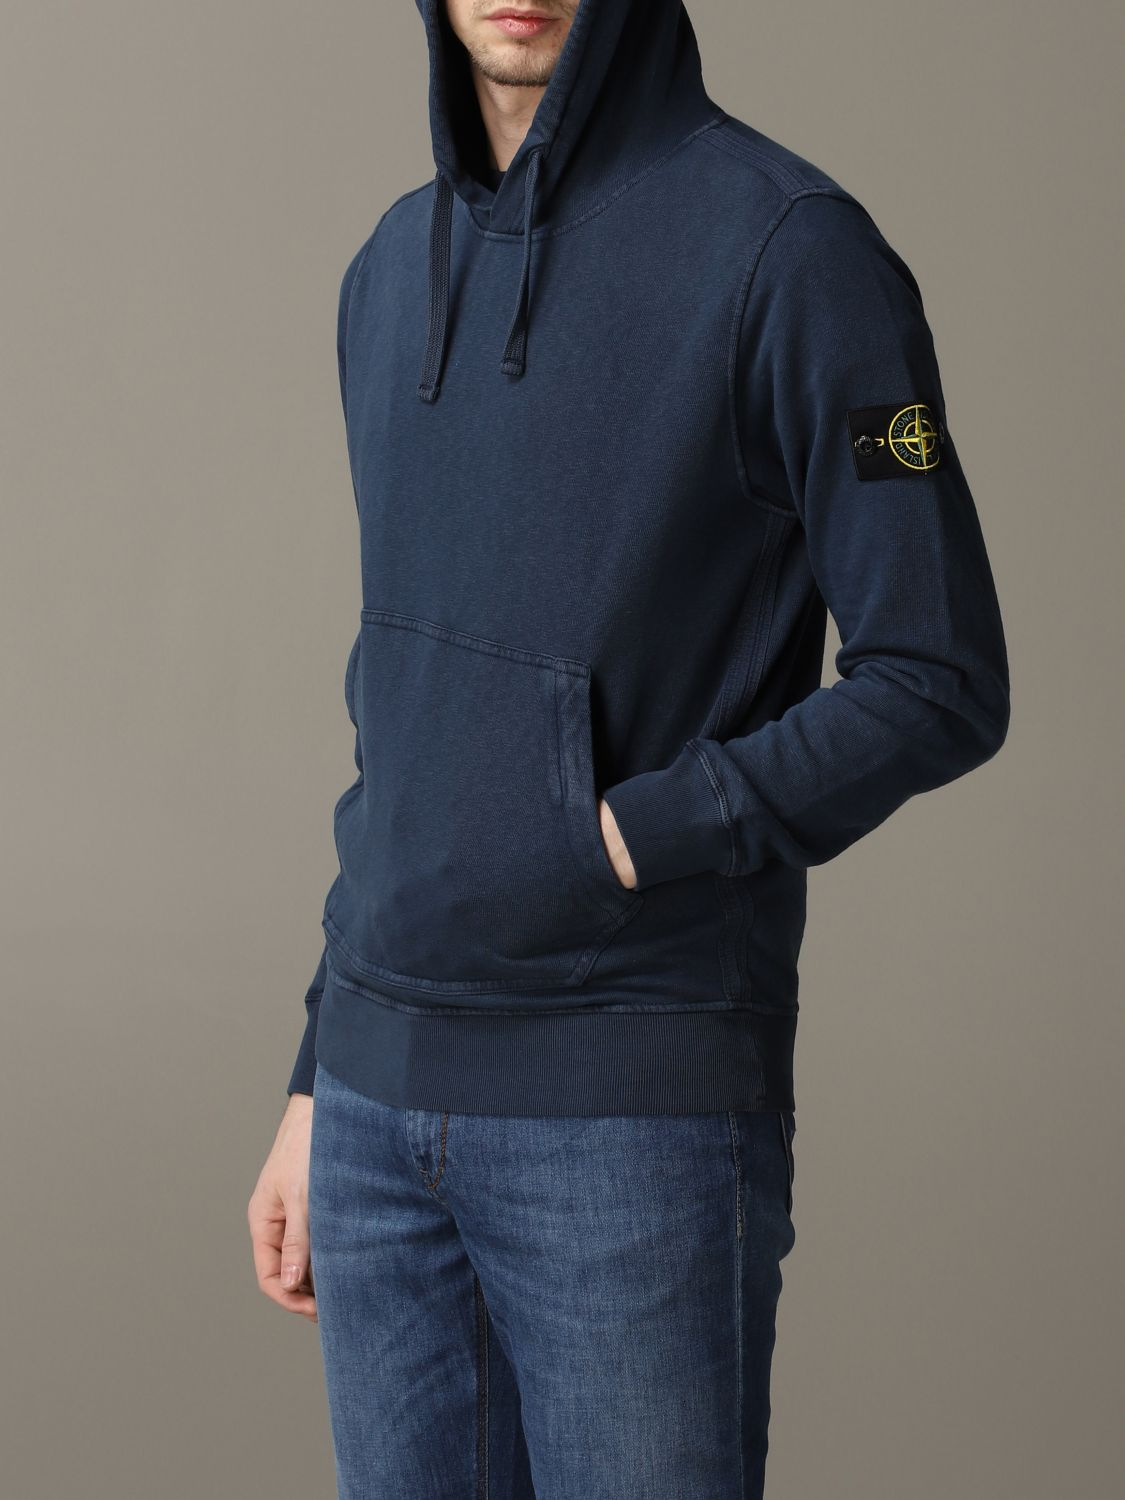 Sweatshirt men Stone Island avion 5